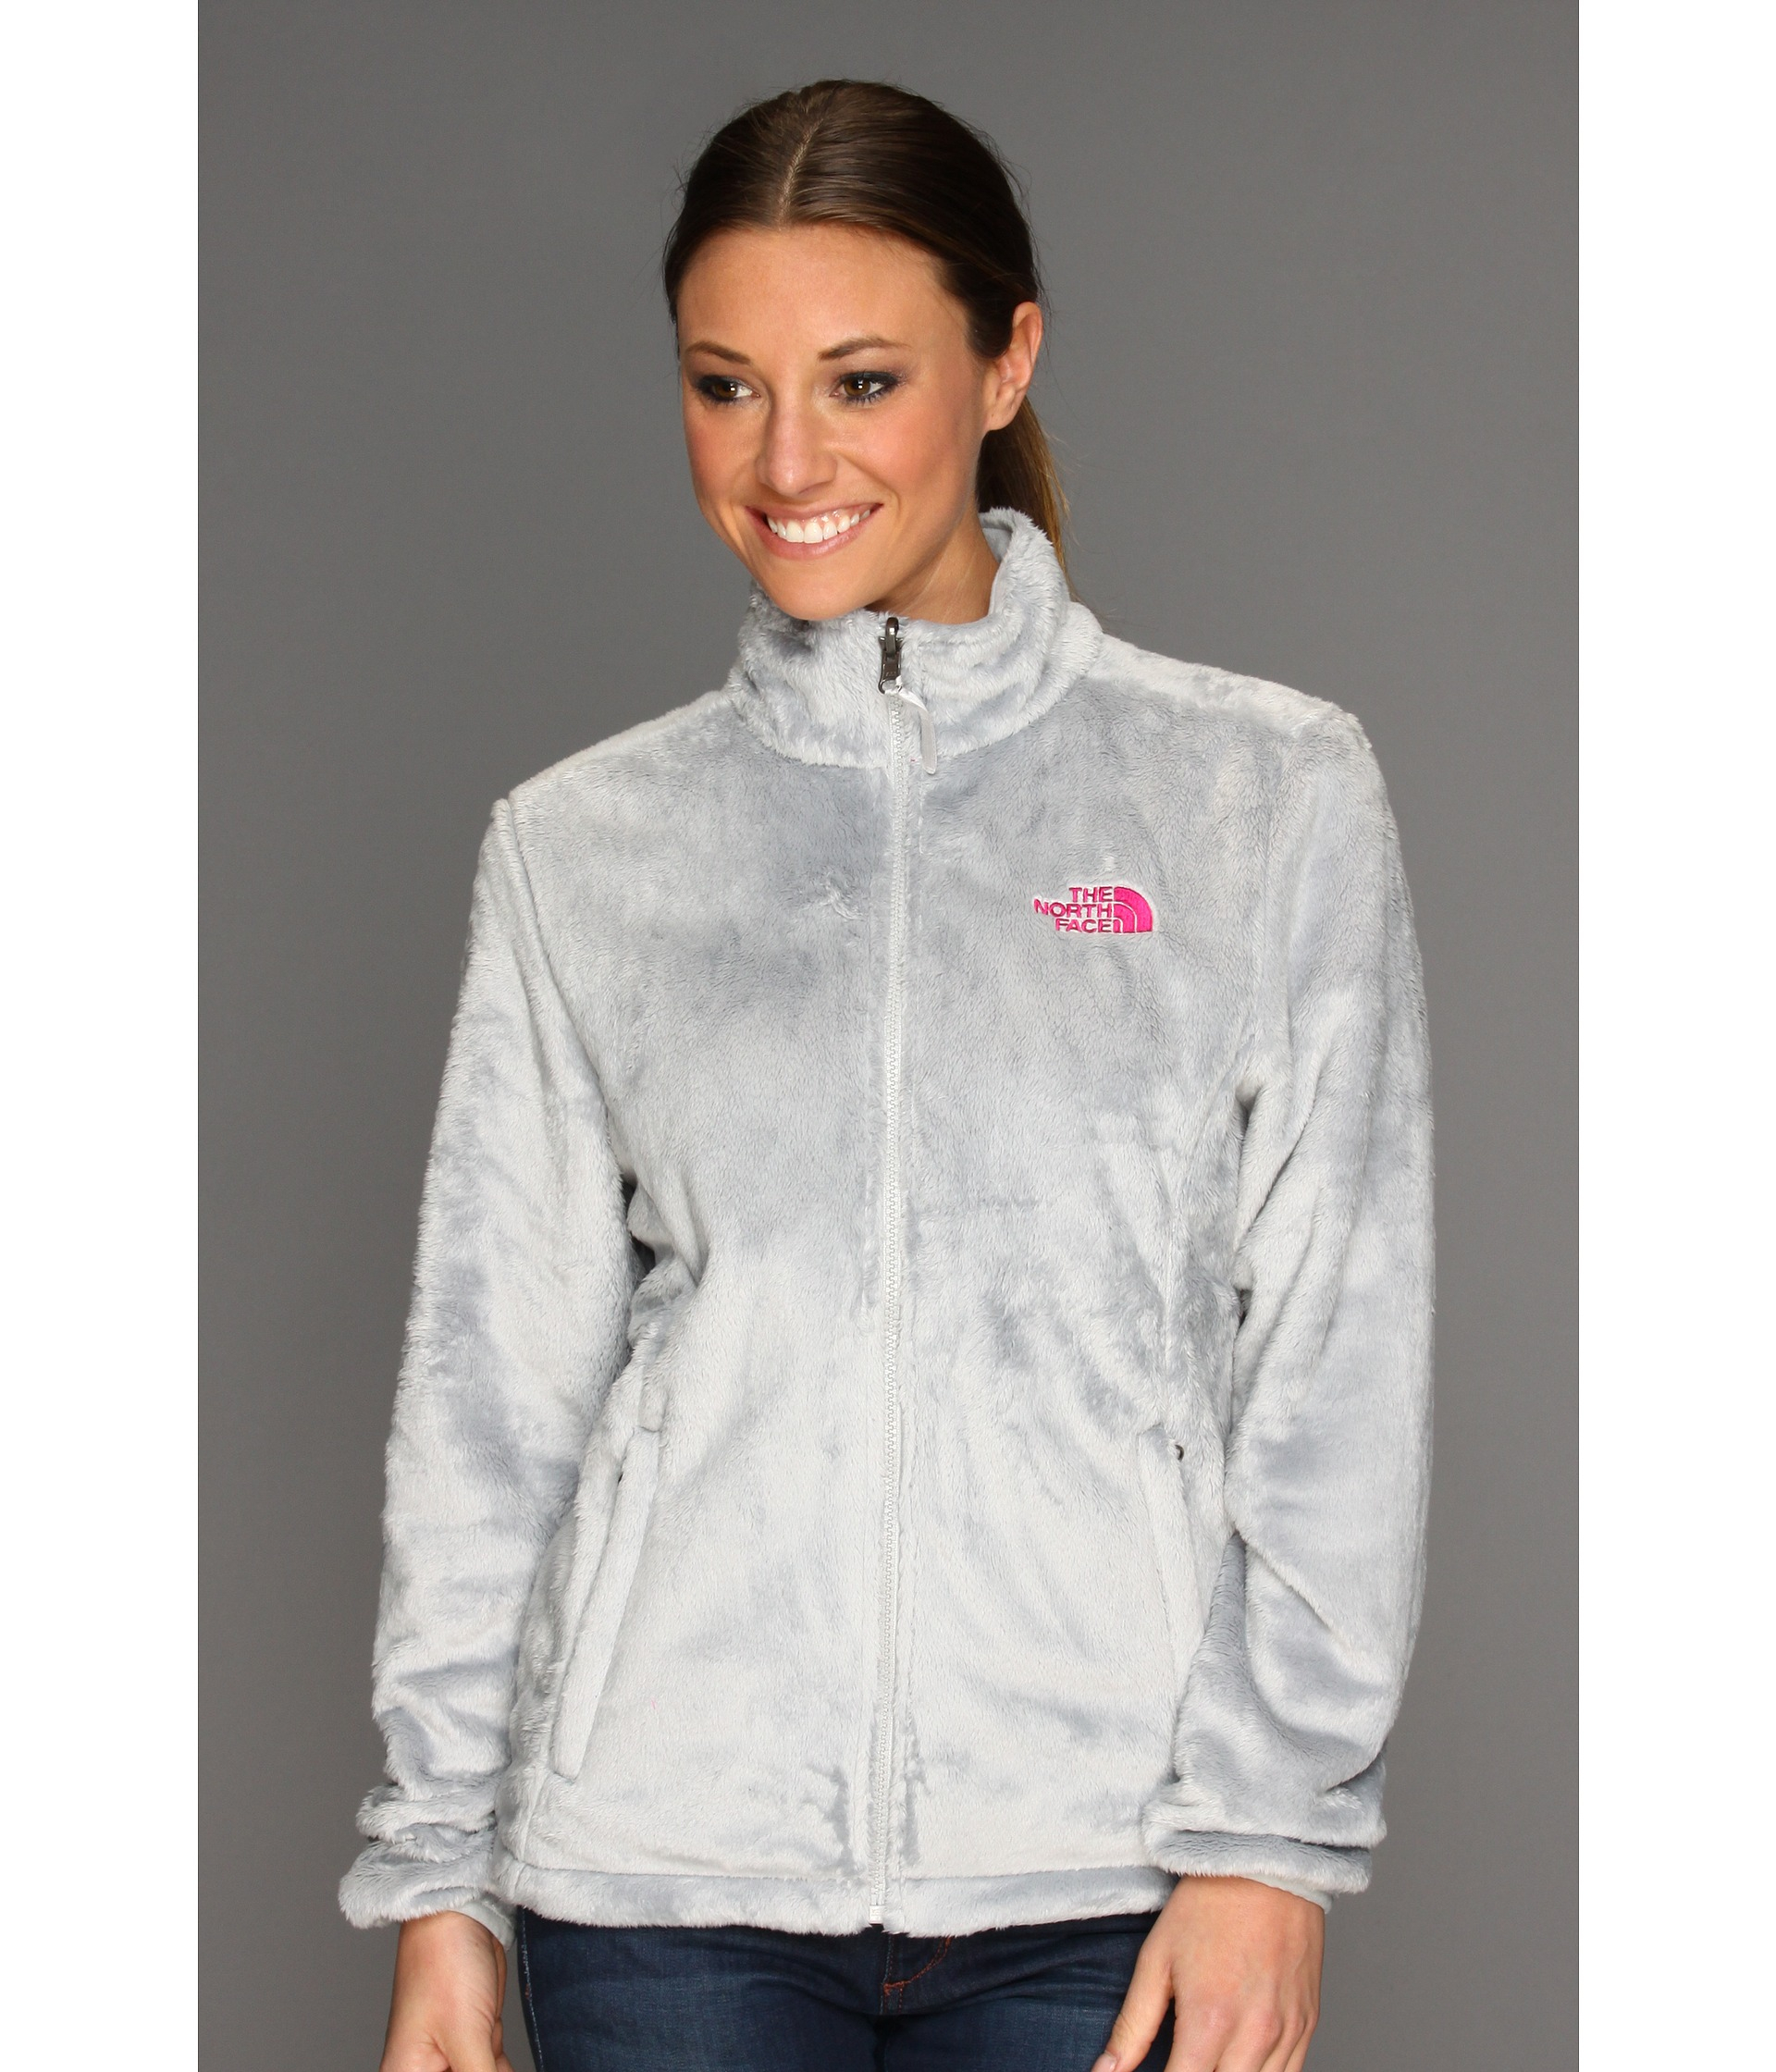 7ef01869b878 ... new arrivals lyst the north face osito jacket in gray 2b155 5ca83